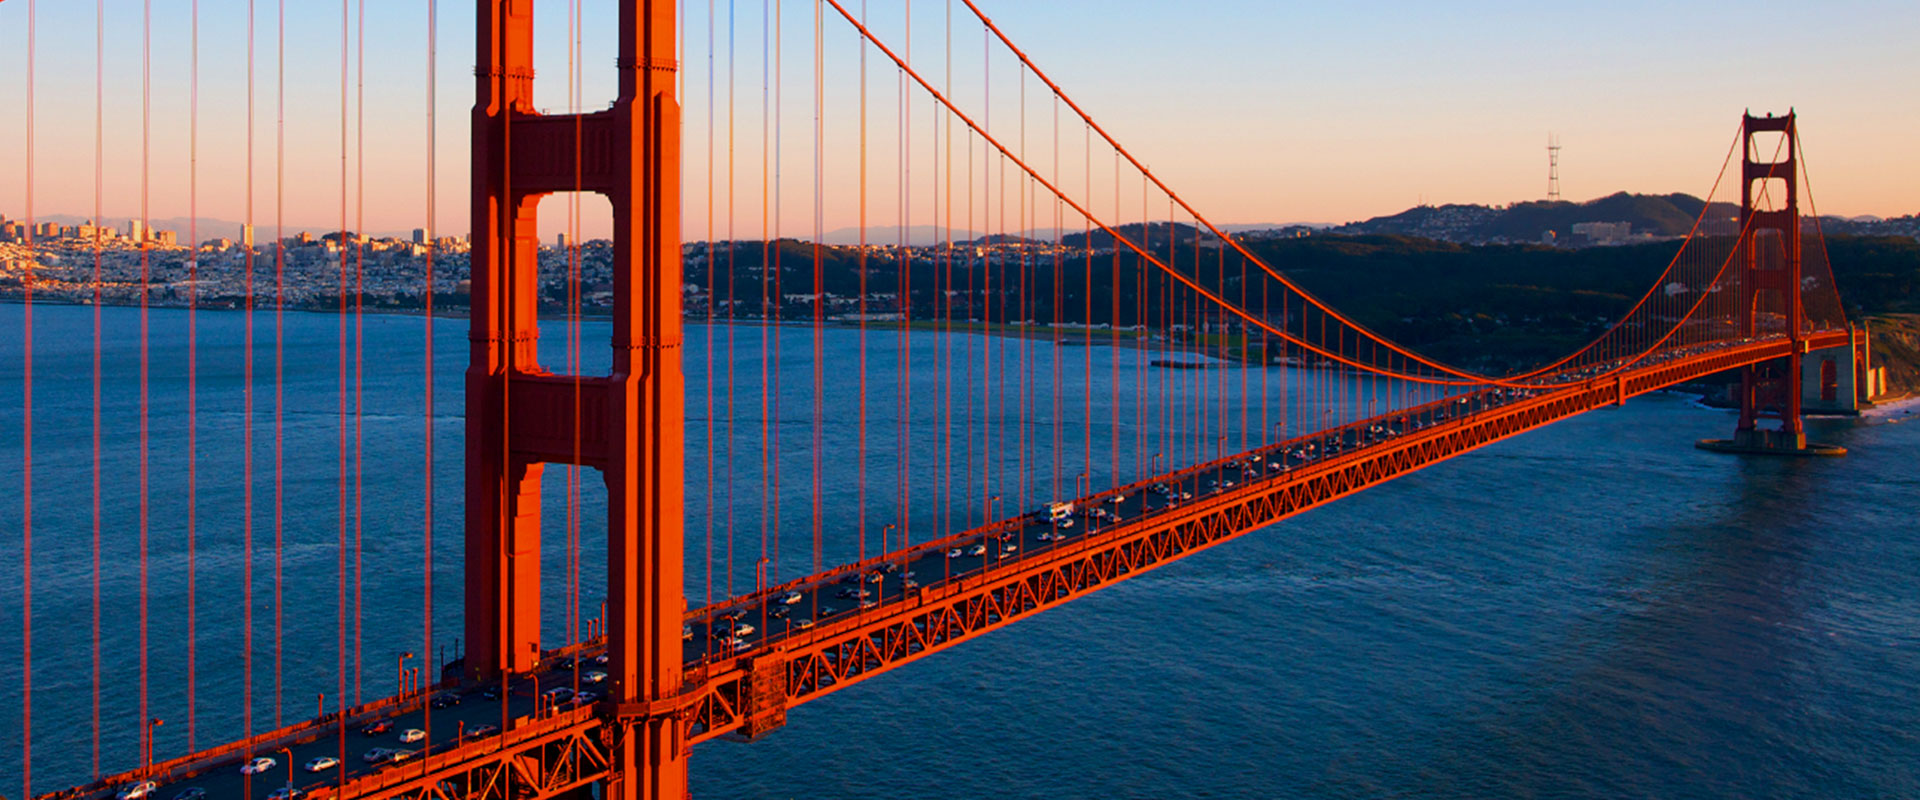 adventures-by-disney-north-america-san-francisco-long-weekend-hero-01-golden-gate-bridge.jpg